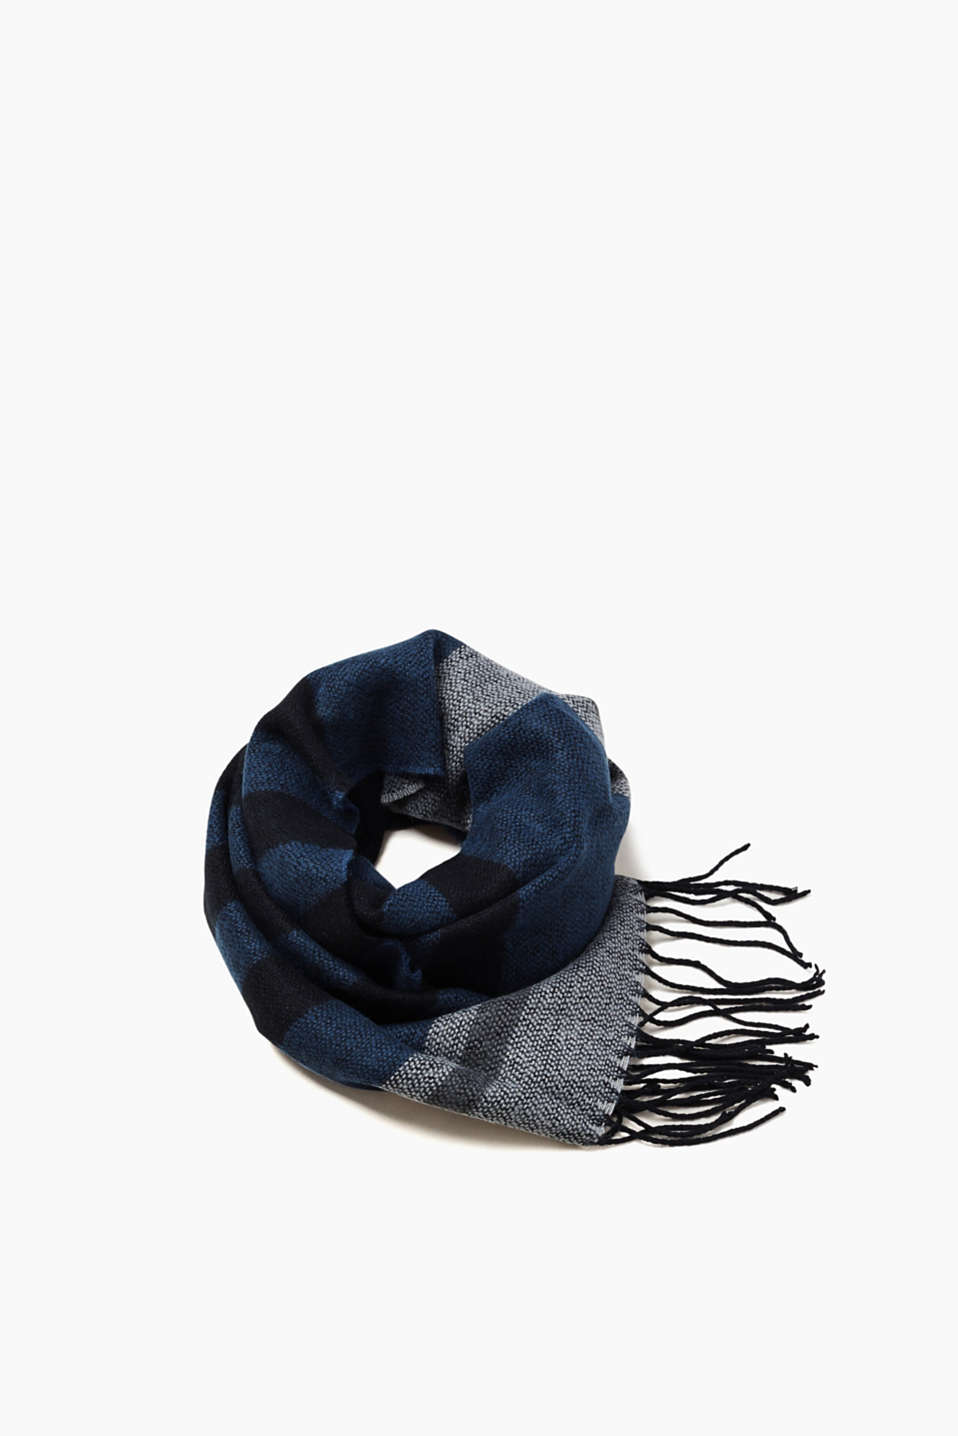 Timeless and elegant: this scarf impresses with its striking striped look.